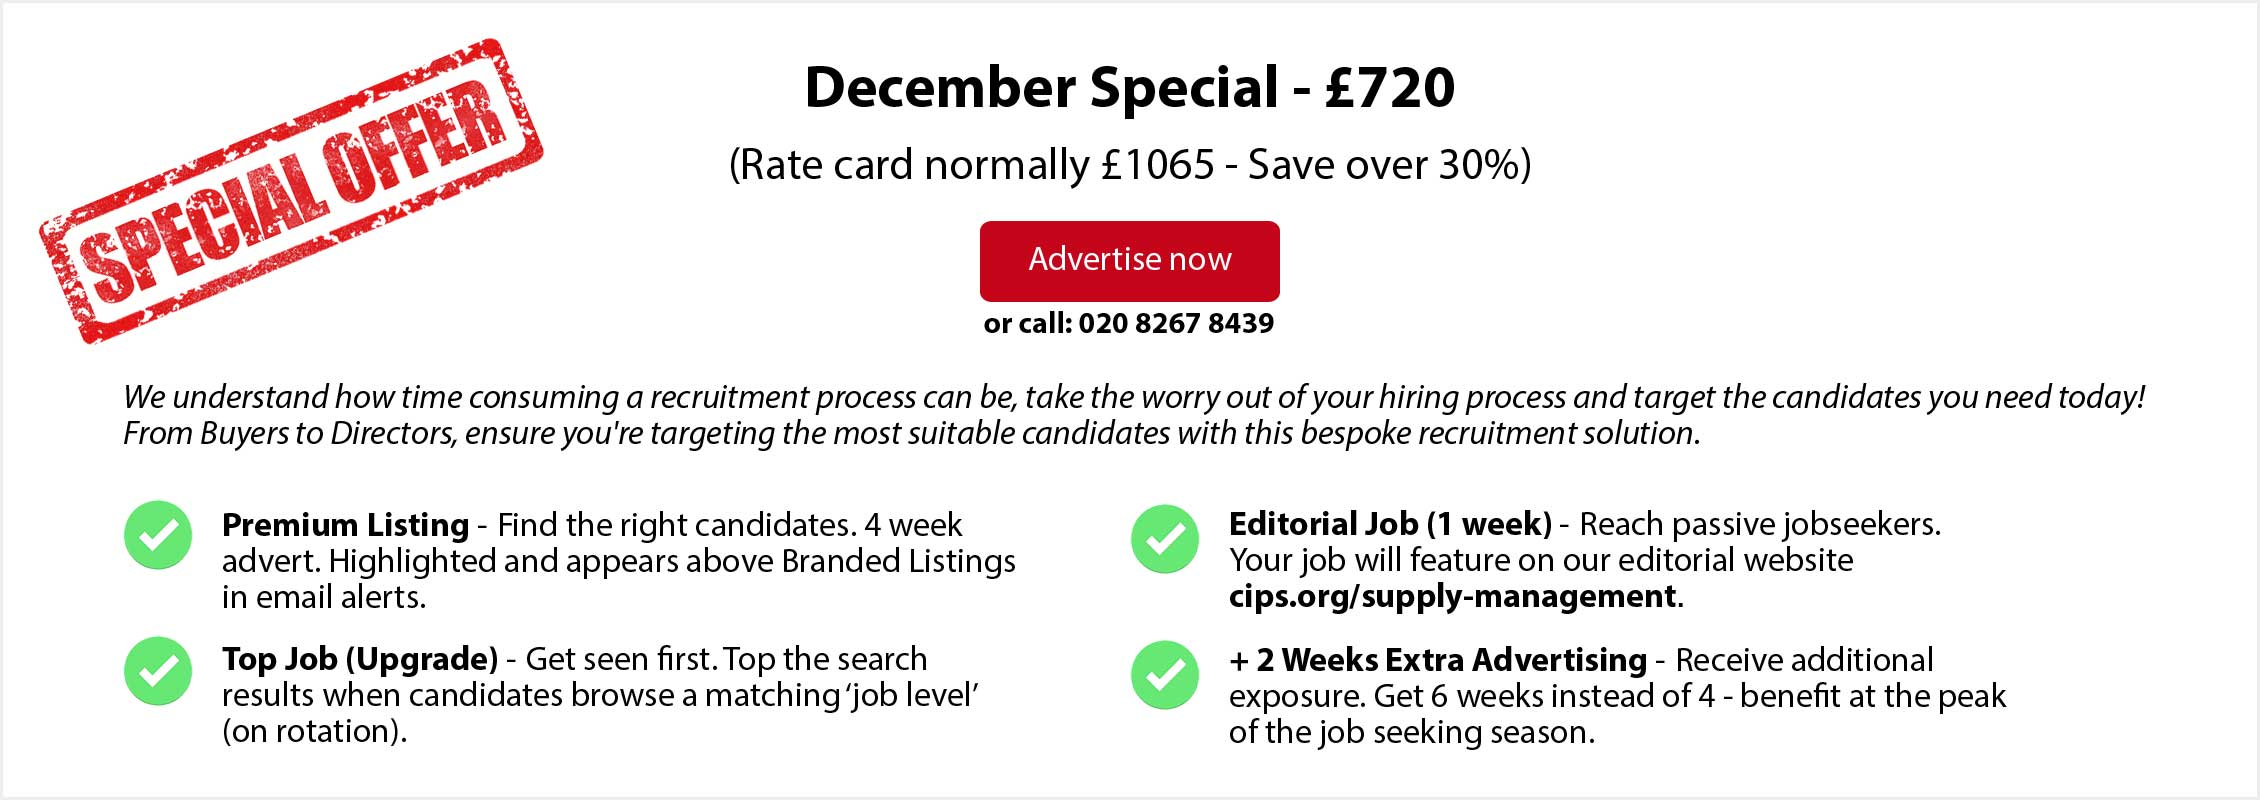 Special Offer. December Special - £720. (Rate card normally £1065 - Save over 30%. ADVERTISE NOW or call: 020 8267 8439. From Buyers to Directors, ensure you're targeting the most suitable candidates with this bespoke recruitment solution. Premium Listing - Find the right candidates. 4 week advert. Highlighted and appears above Branded Listings in email alerts. Top Job (Upgrade) - Get seen first. Top the search results when candidates browse a matching 'job level' (on rotation). Editorial Job (1 week) - Reach passive jobseekers. Your job will feature on our editorial website cips.org/supply-management. + 2 Weeks Extra Advertising - Receive additional exposure. Get 6 weeks instead of 4 - benefit at the peak of the job seeking season.